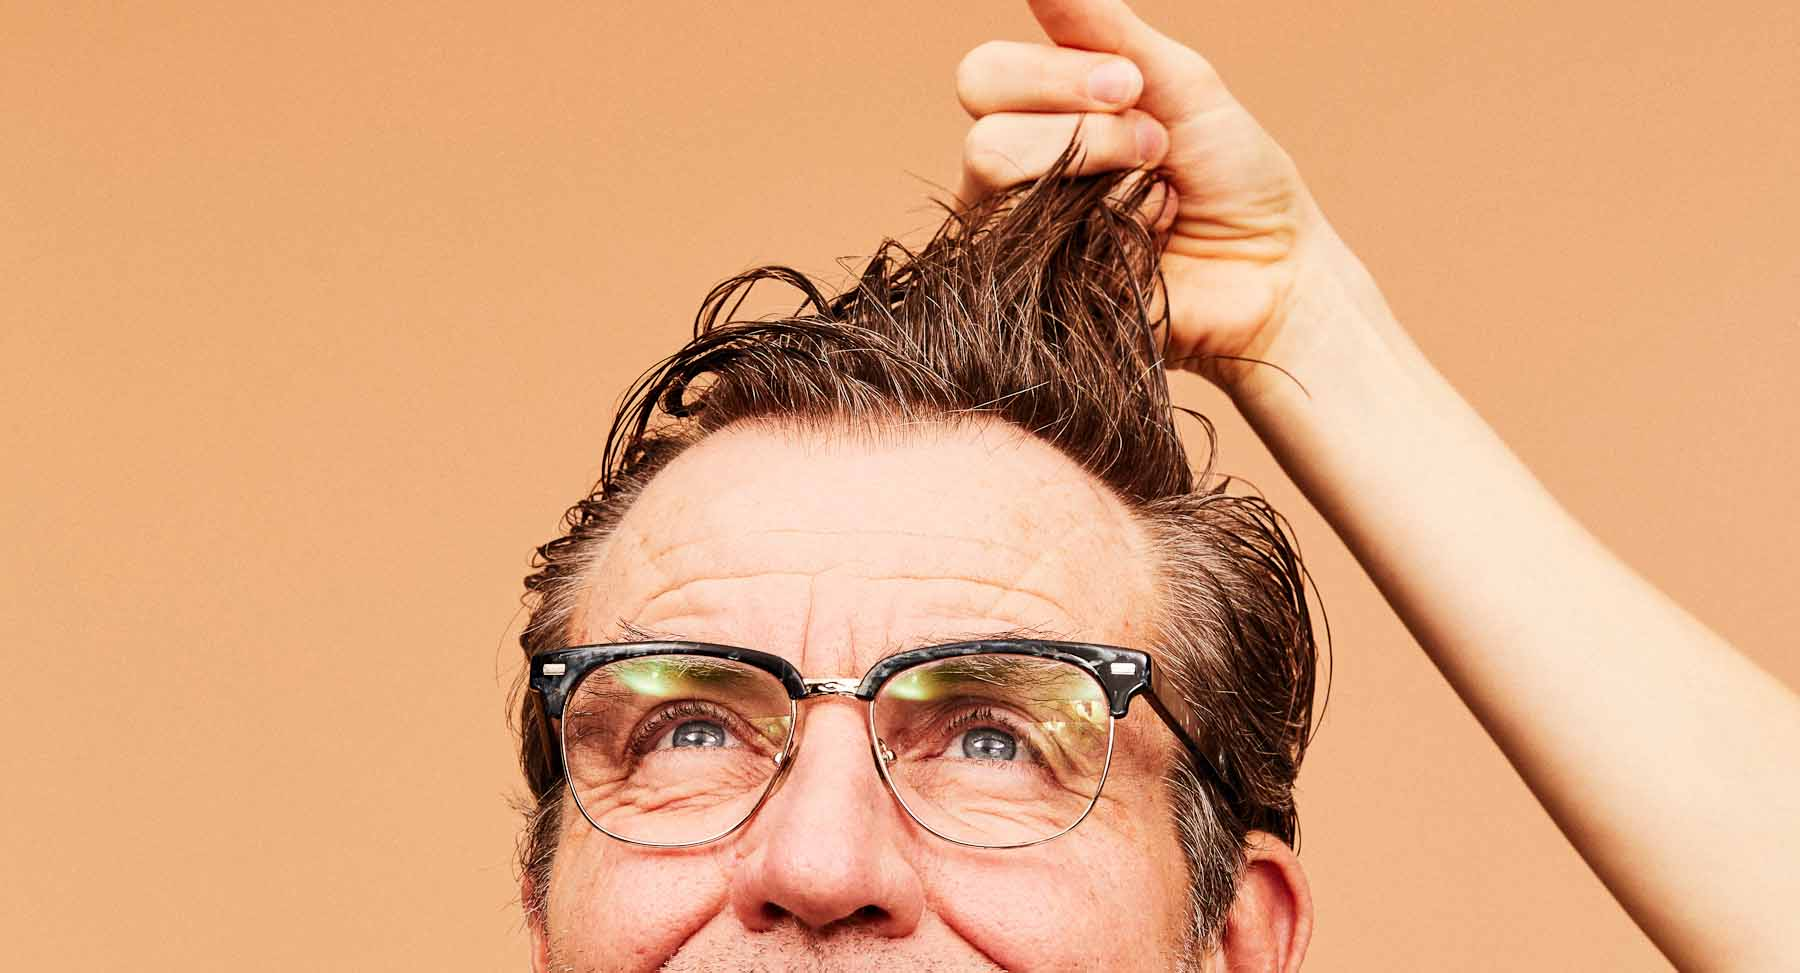 The True Cost of Hair Transplants: Time, Money and Side Effects